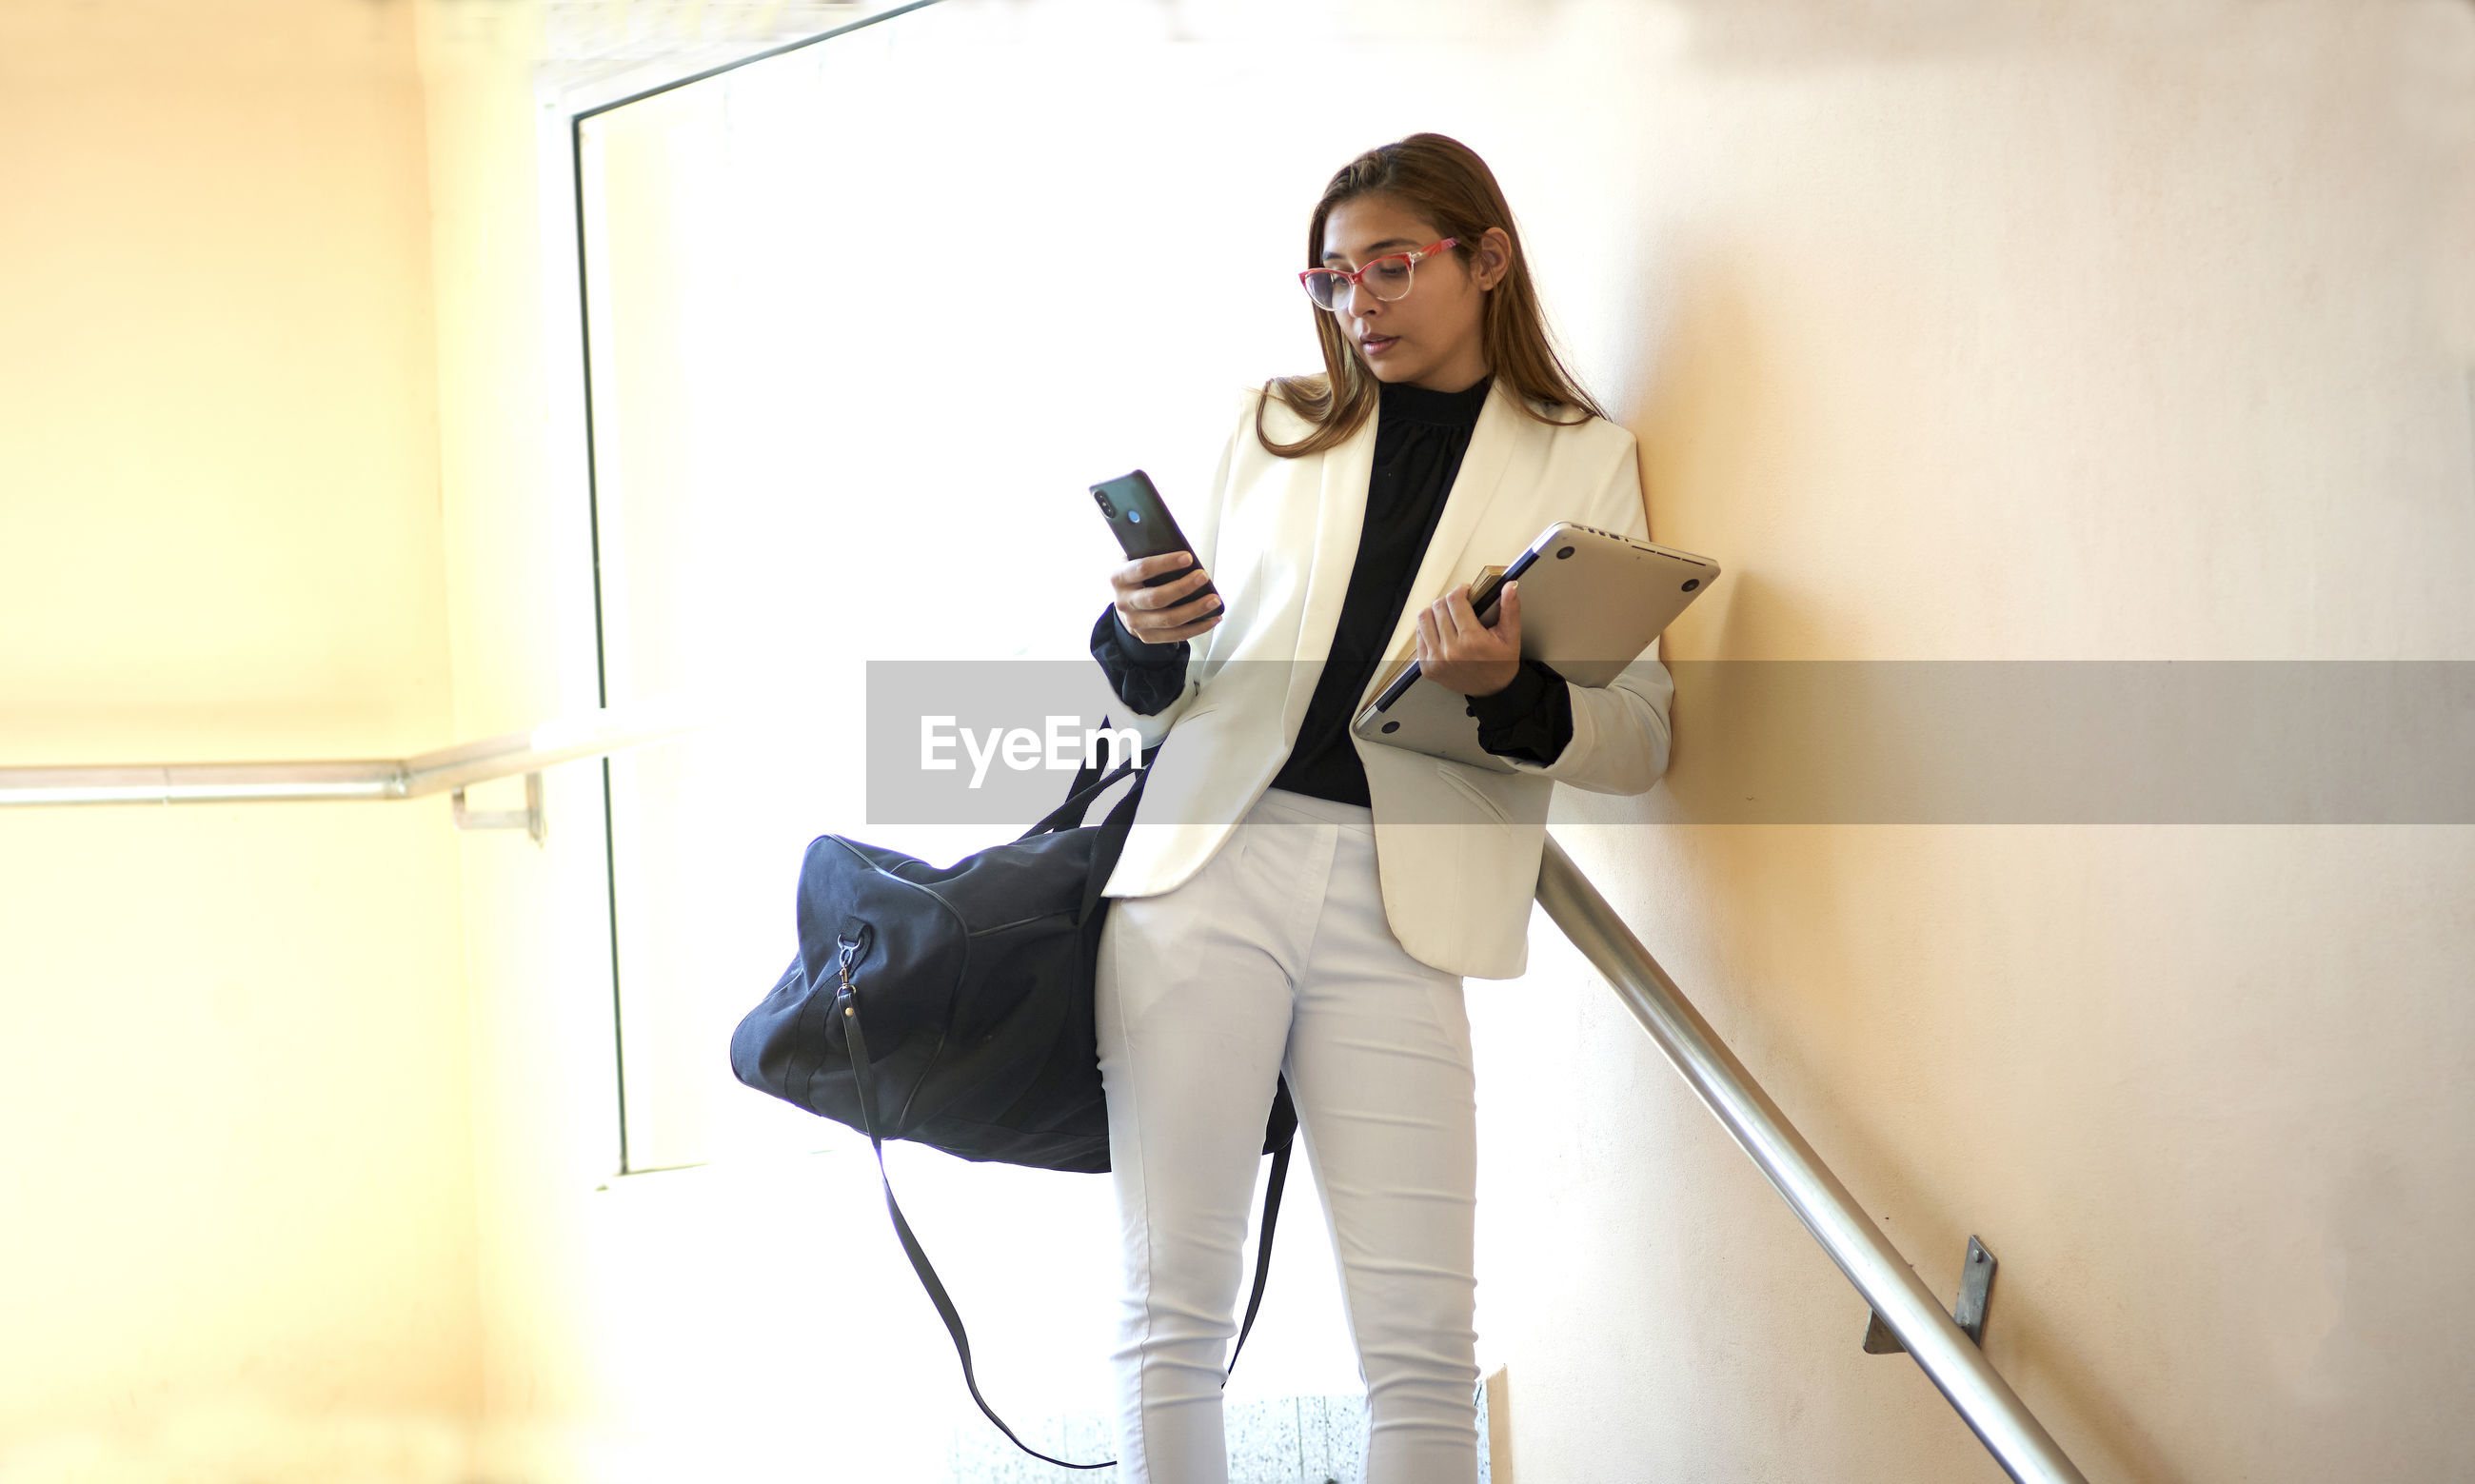 YOUNG WOMAN USING SMART PHONE WHILE STANDING AGAINST WALL